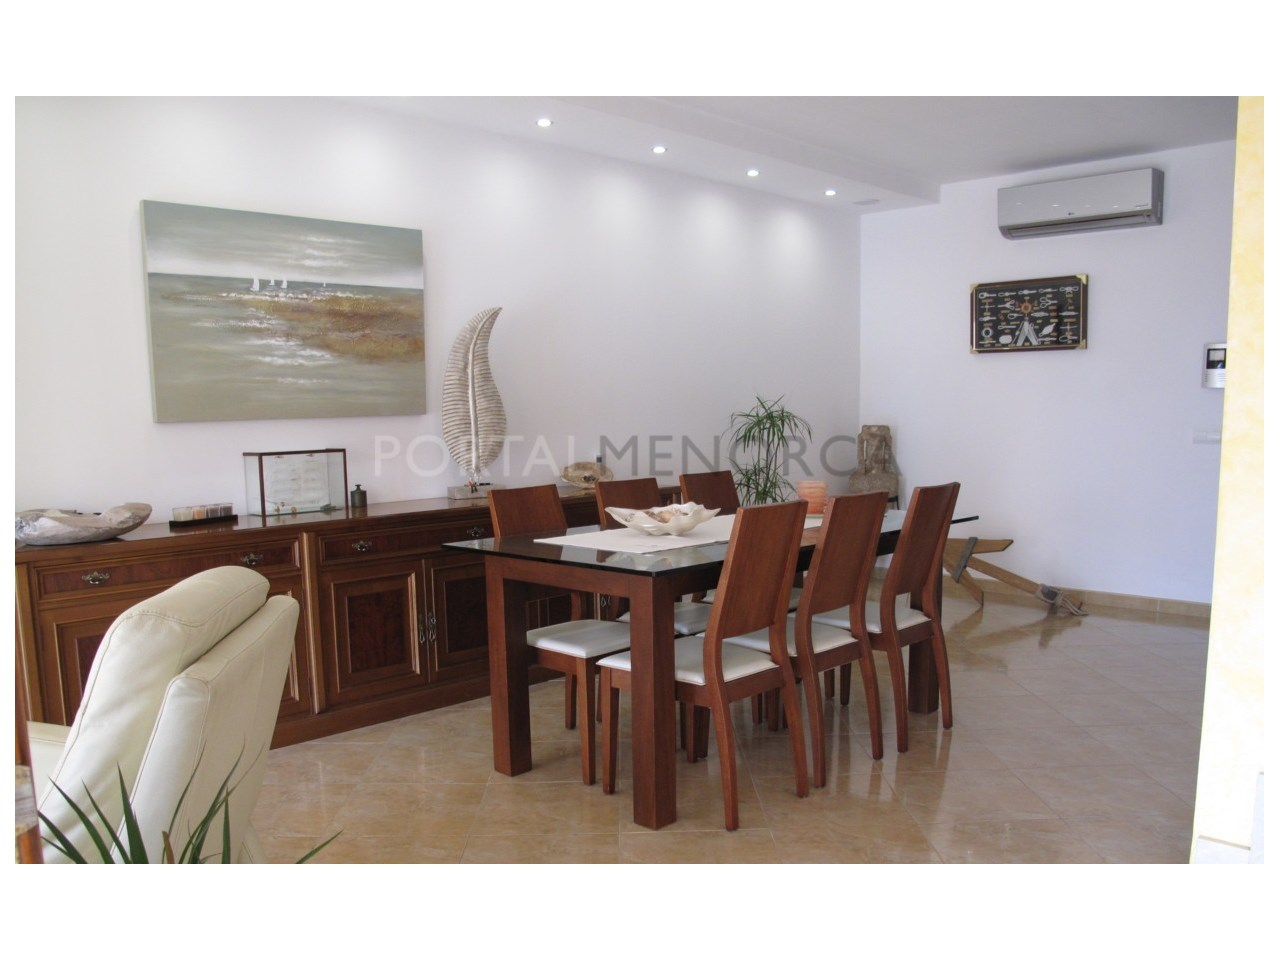 Charming villa with garage in Son Oleo for sale-Dinning room